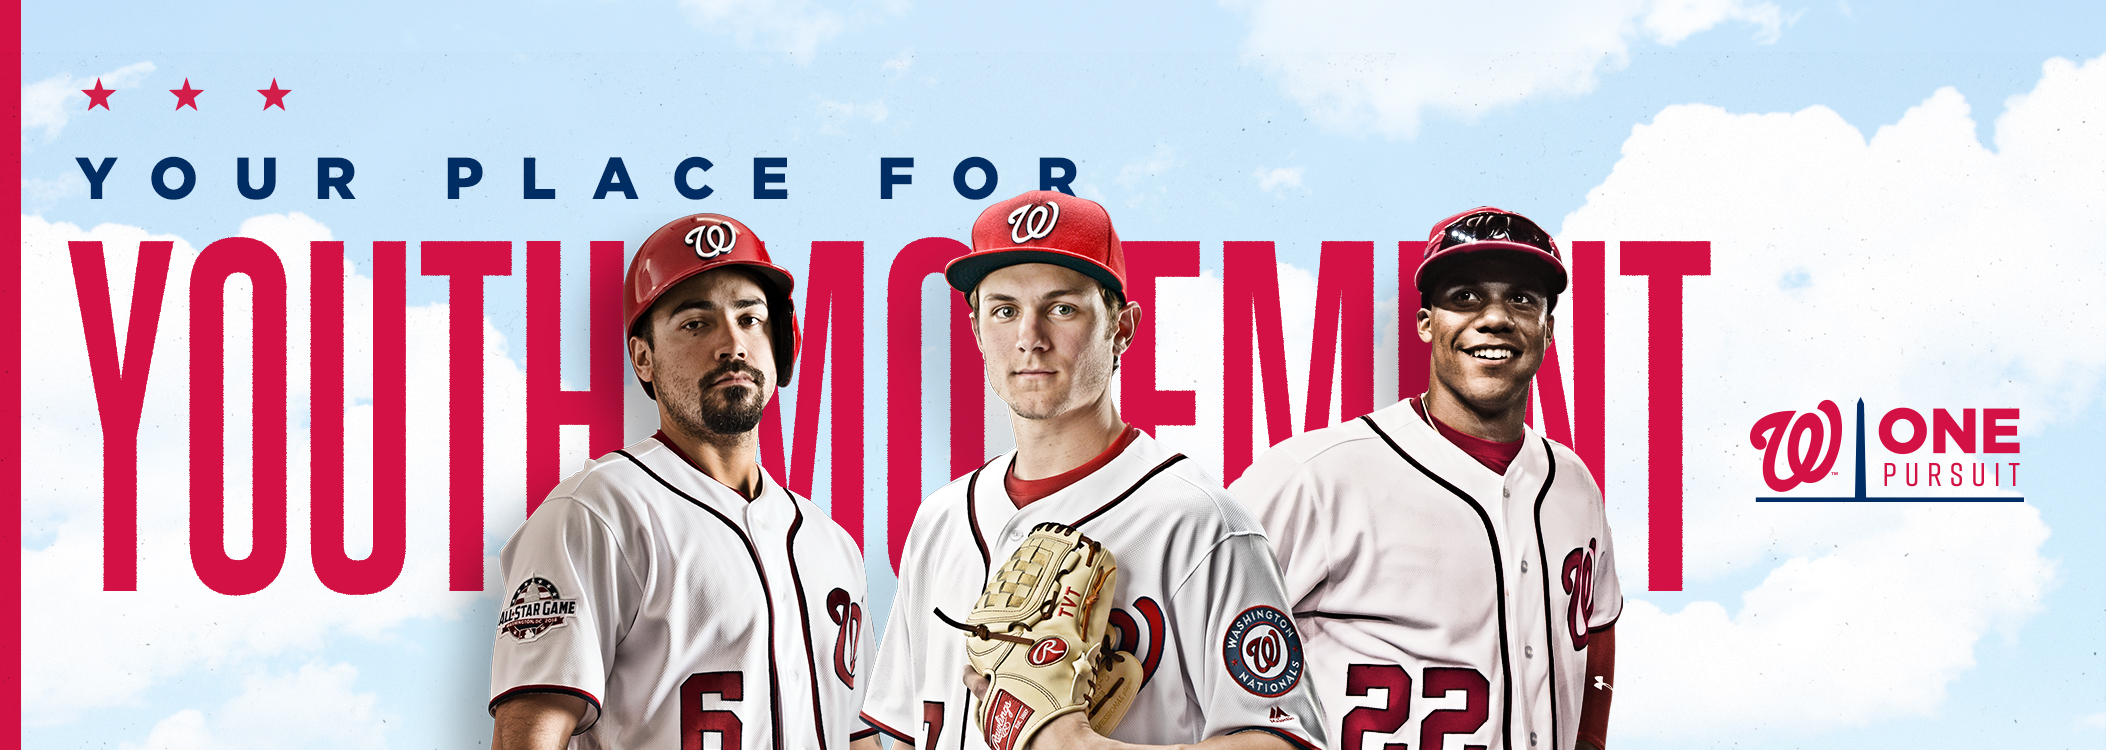 washington nationals graphic design